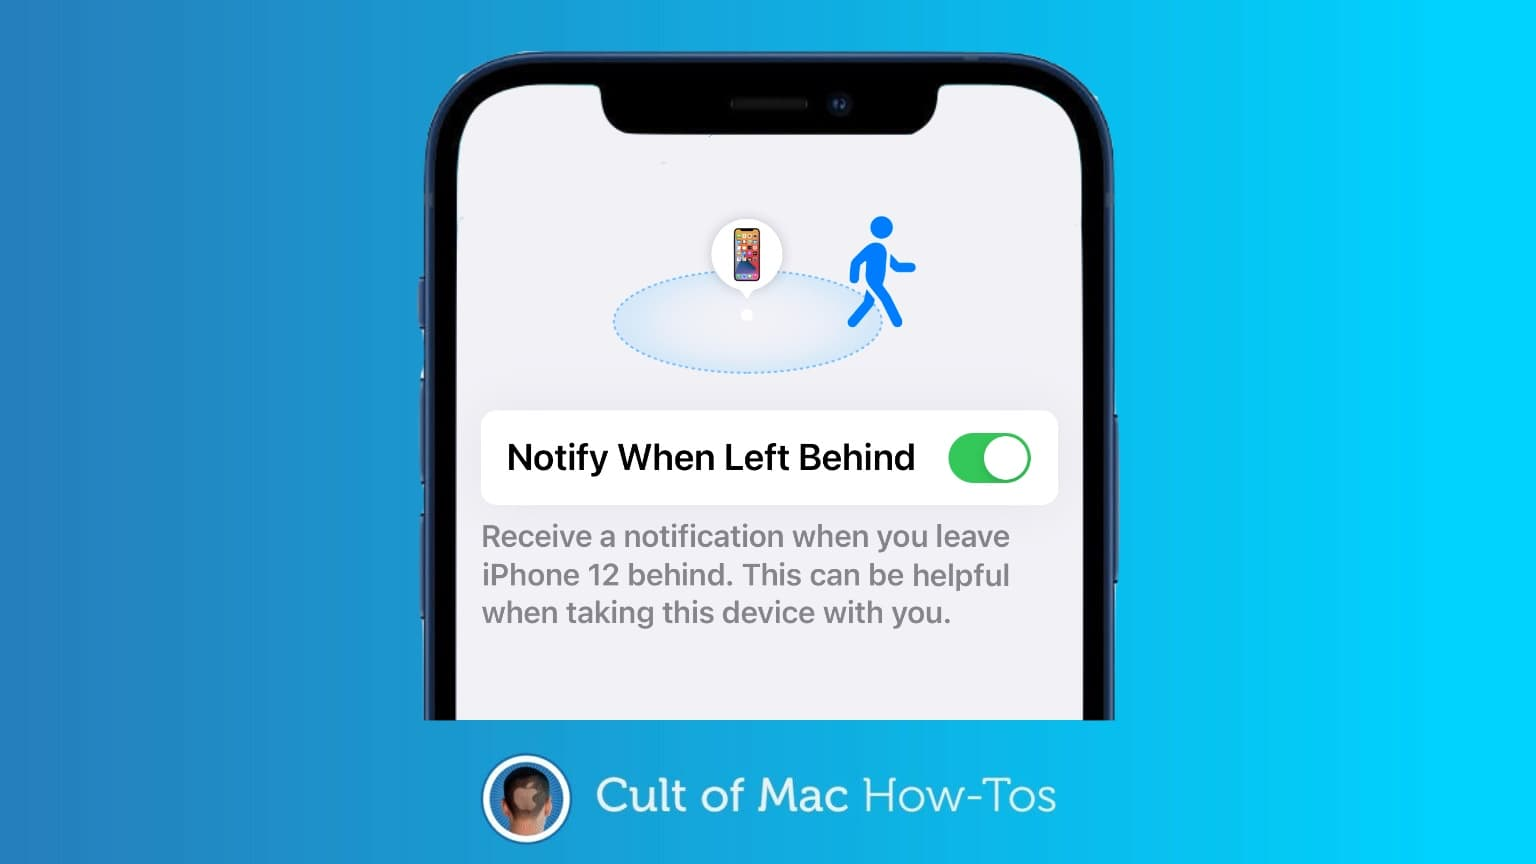 How to get a separation alert warning if you forget your iPhone, Mac, iPad, etc.